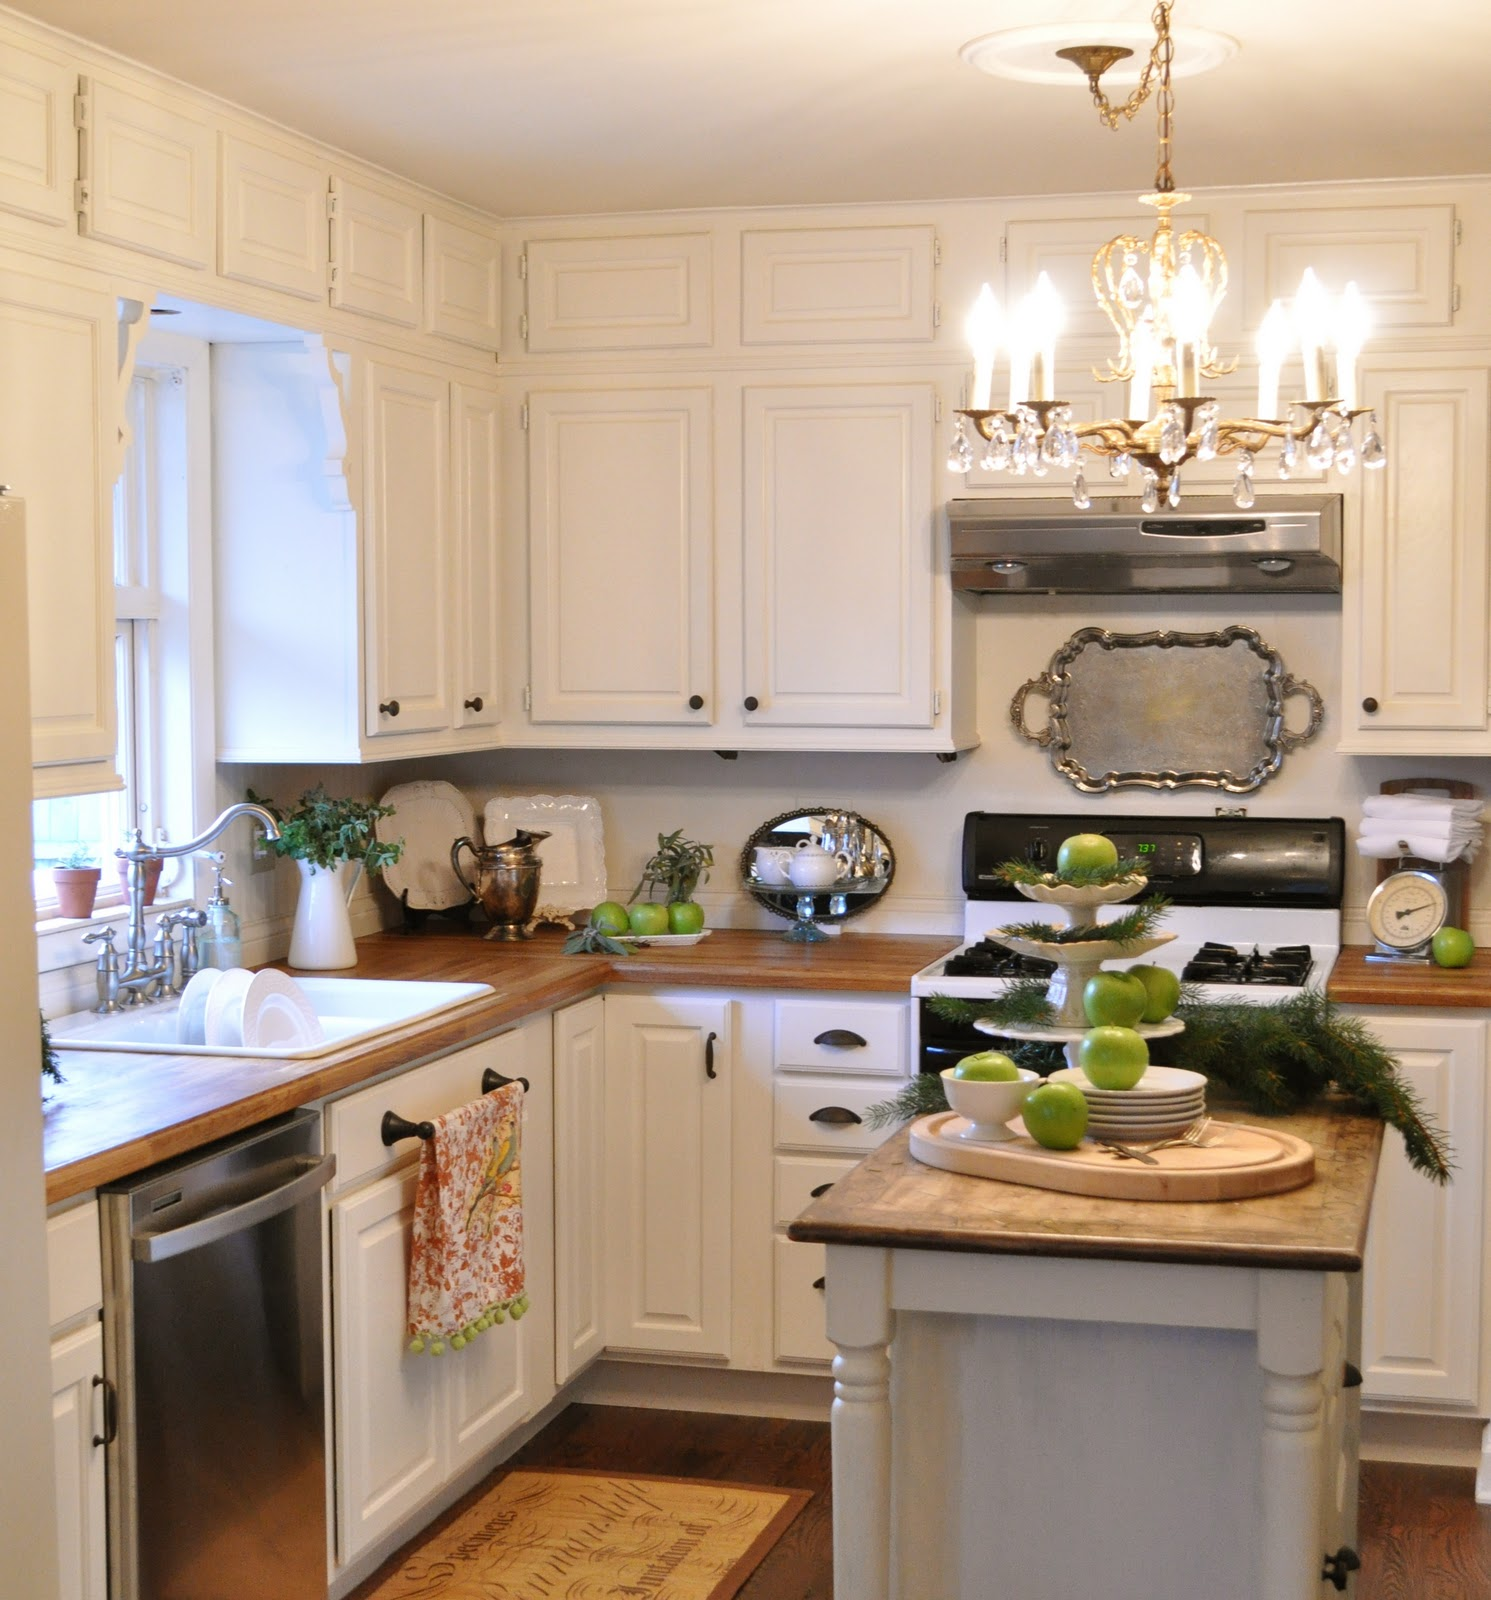 My complete kitchen remodel story for about 12 000 for Kitchen cabinet remodel